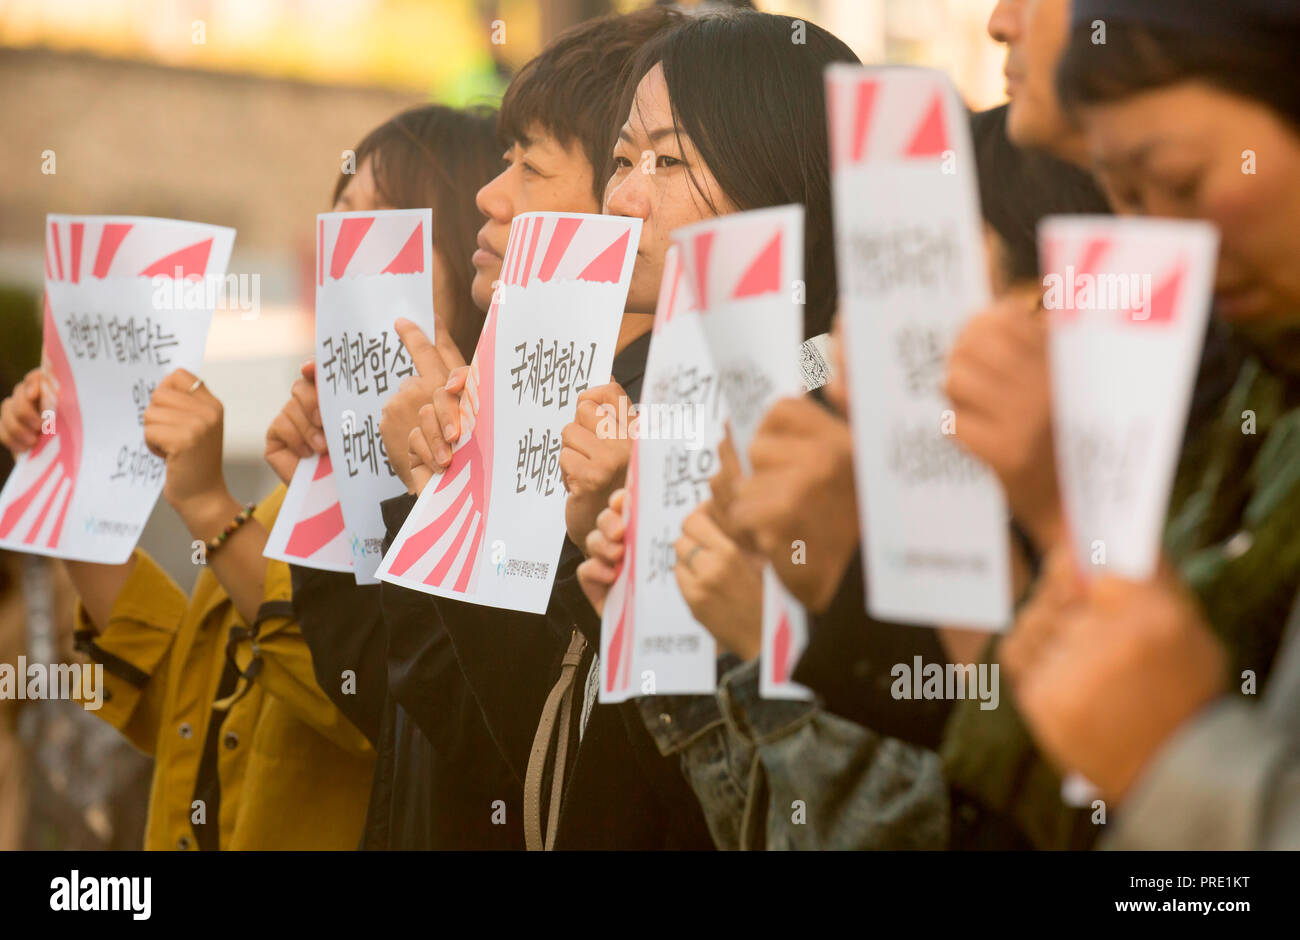 Protest against Japanese rising sun flag in South Korea, Oct 1, 2018 : South Korean activists from civic groups attend a press conference in front of the Japanese embassy in Seoul, South Korea. The protesters criticized Japan and its navy planning to display Japanese Rising Sun Flag, which protesters think as a symbol of wartime aggression, during the International Fleet Review to be held off the island of Jeju, South Korea from October 10-14. Navy ships from 15 countries including Japan, China and the U.S. will participate in the event. South Korean navy said on Sunday it remains in oppositio - Stock Image